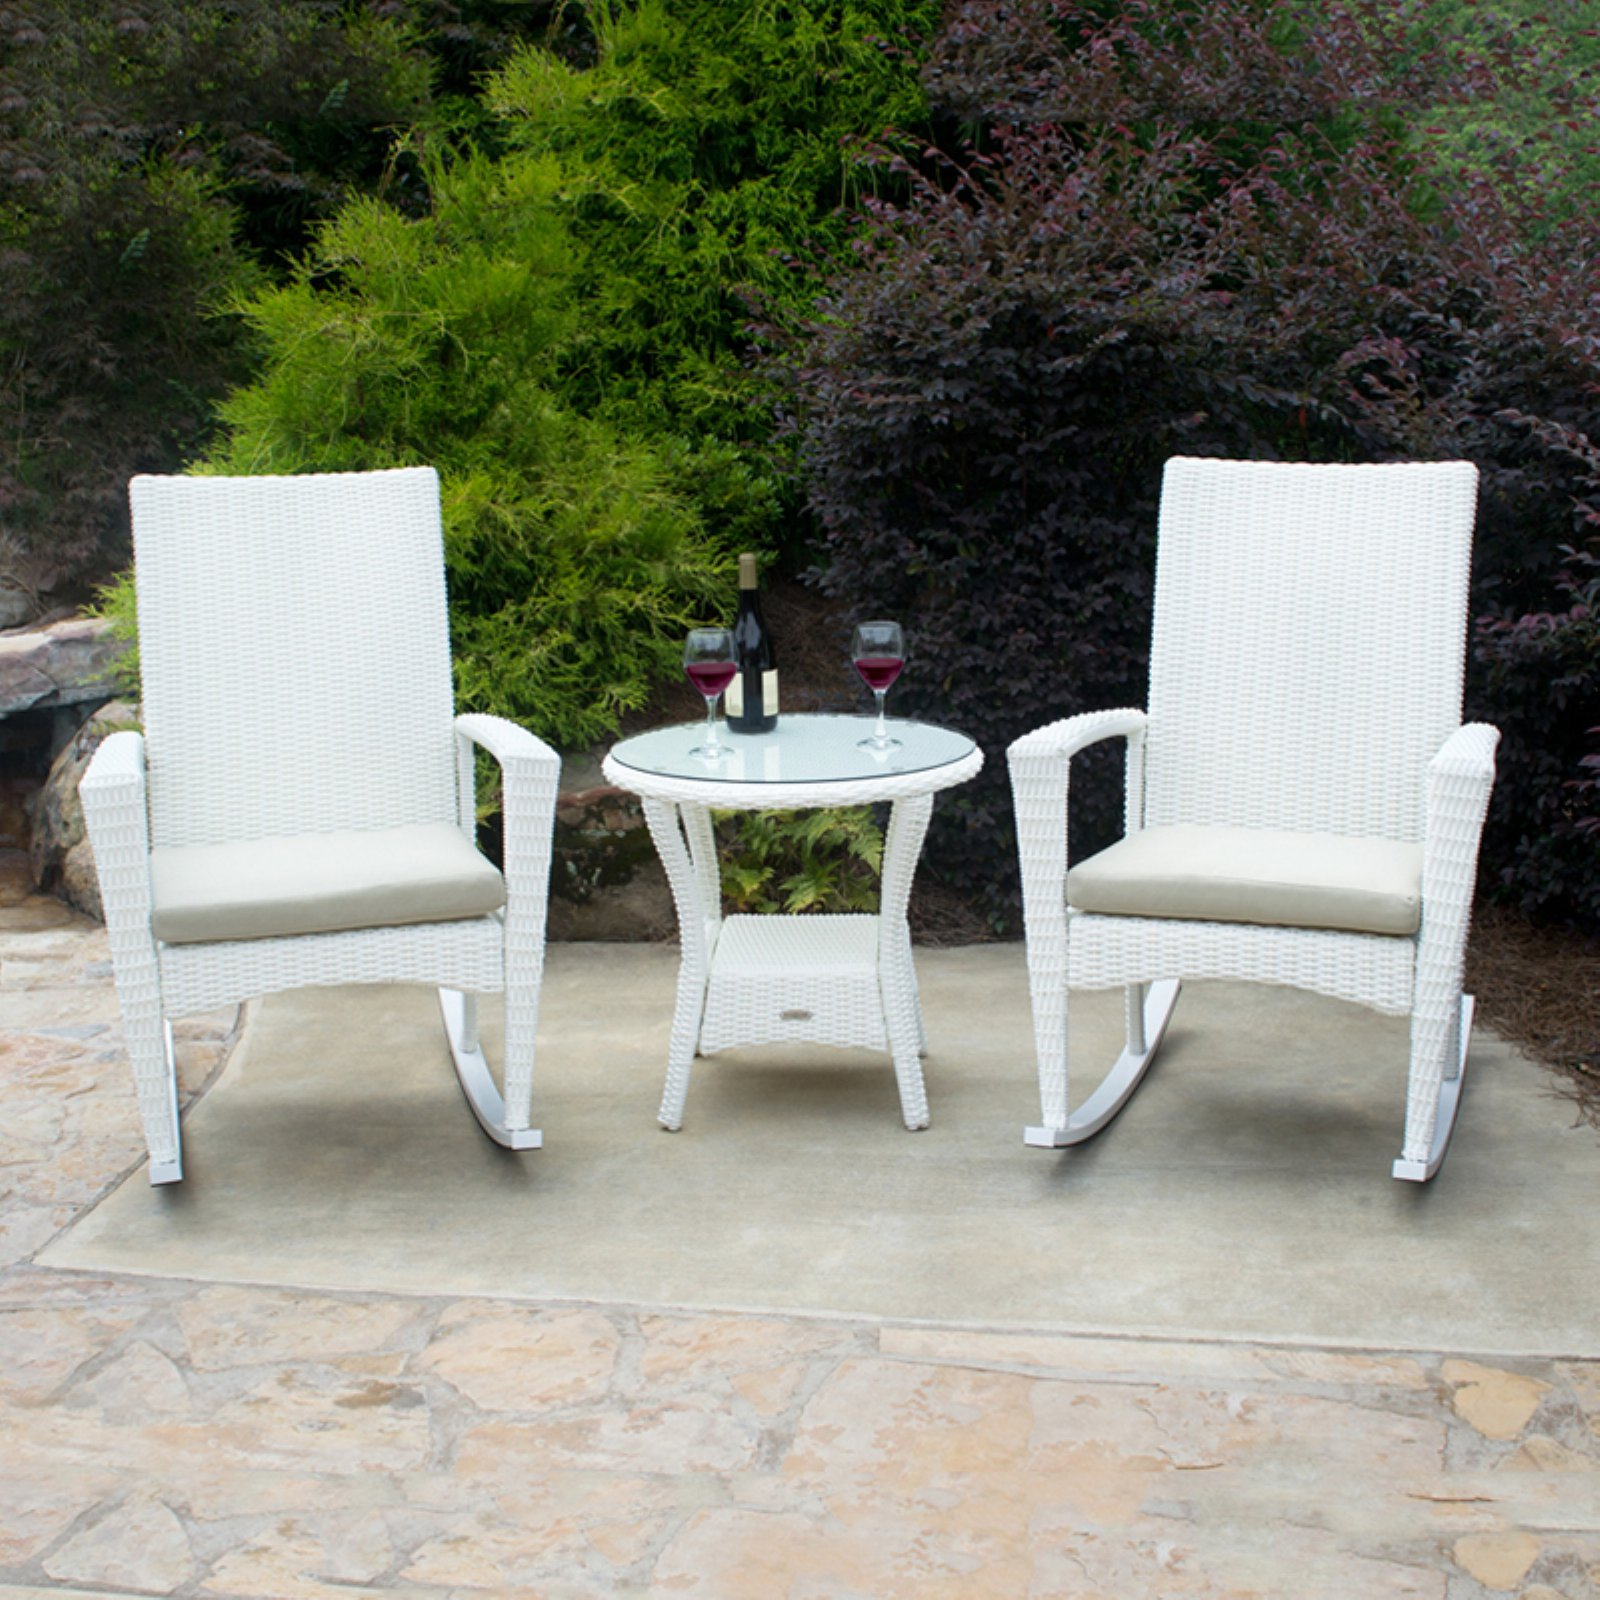 Tortuga Outdoor Bayview 3-pc. Wicker Rocking Chair and Table Set